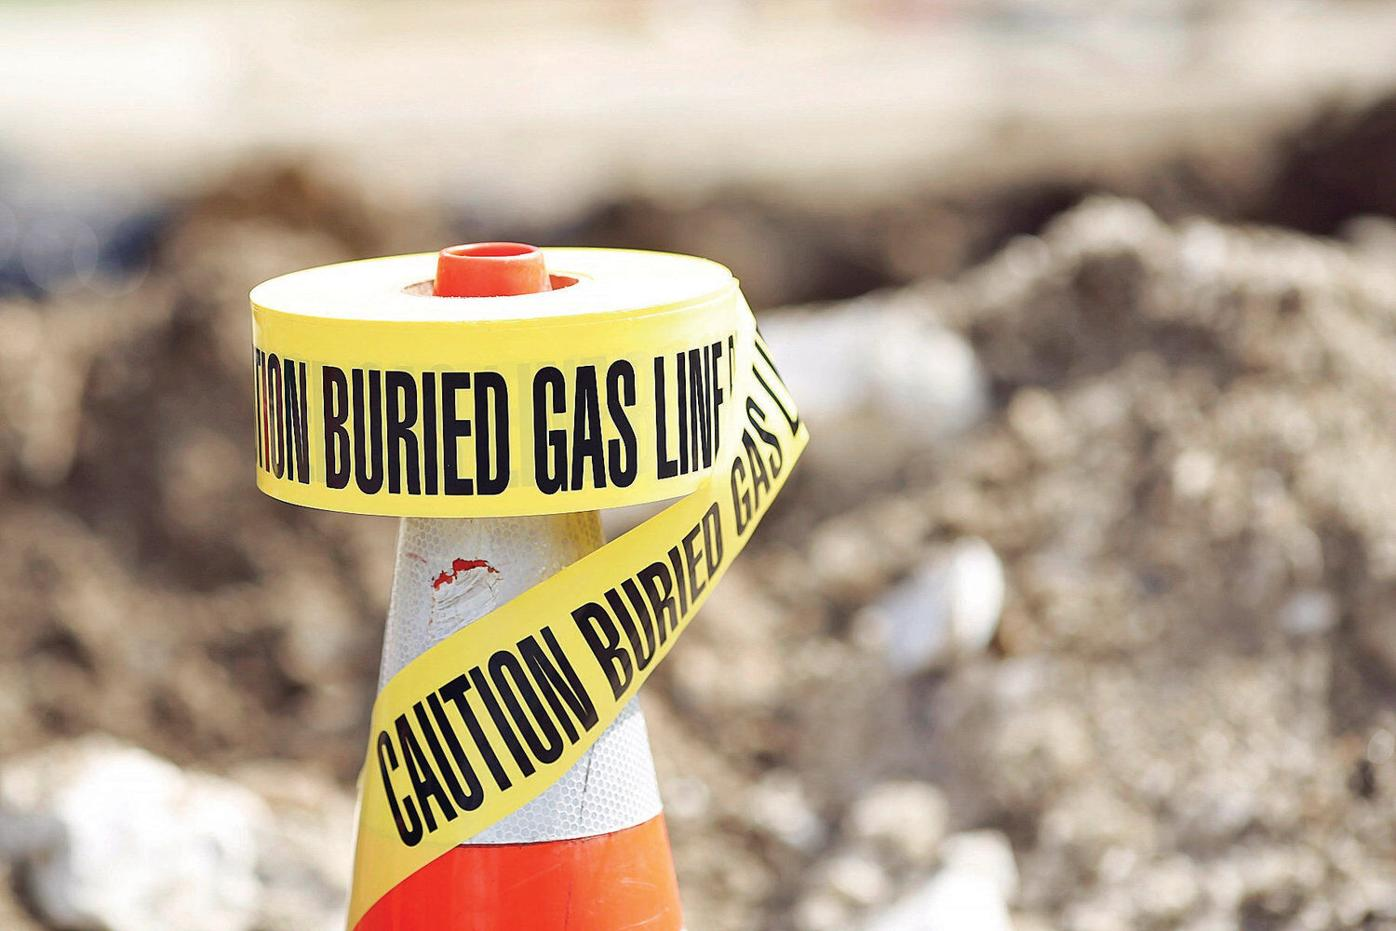 After Boston-area explosion, local lawmakers lean toward fast-track replacement of aging pipes